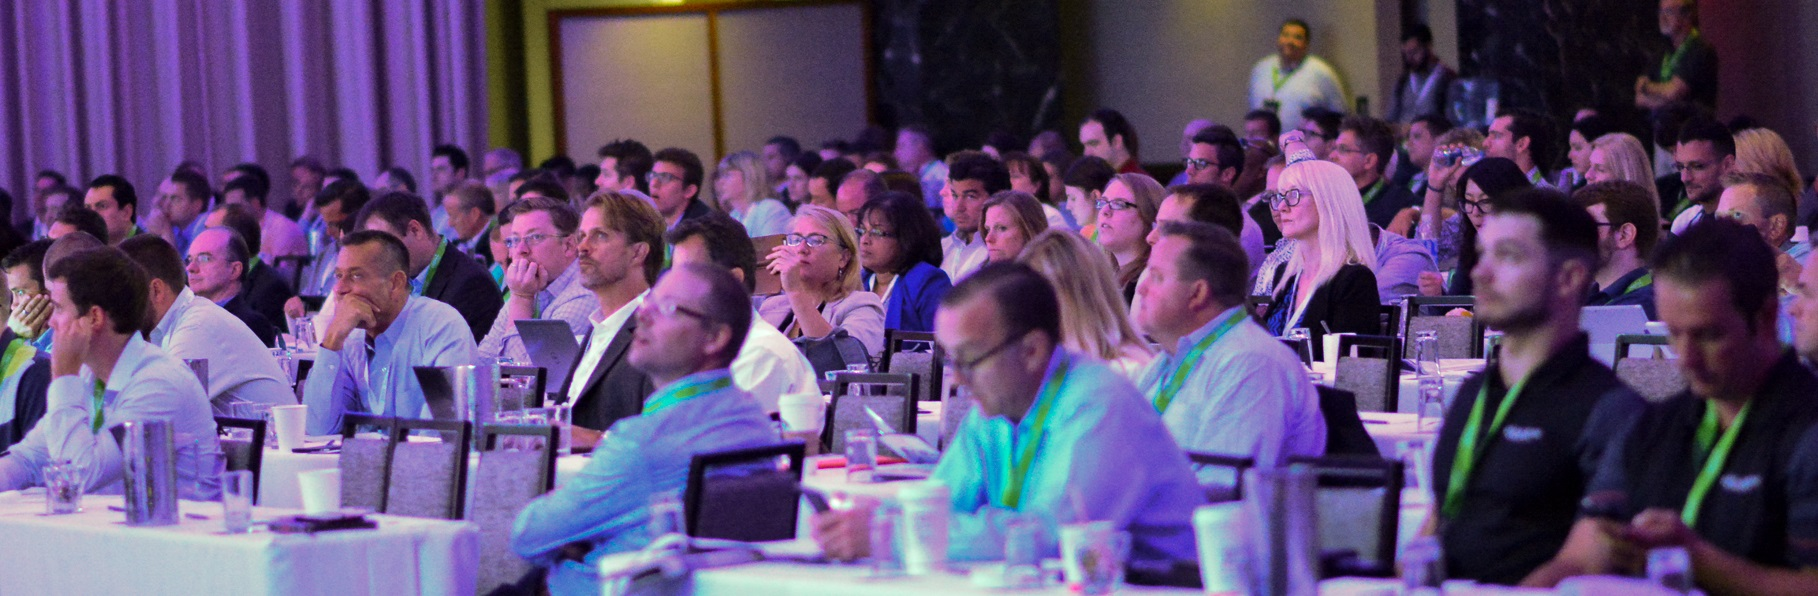 alphagamma ultimate list of digital marketing events in the US in 2018 entrepreneurship leadscon